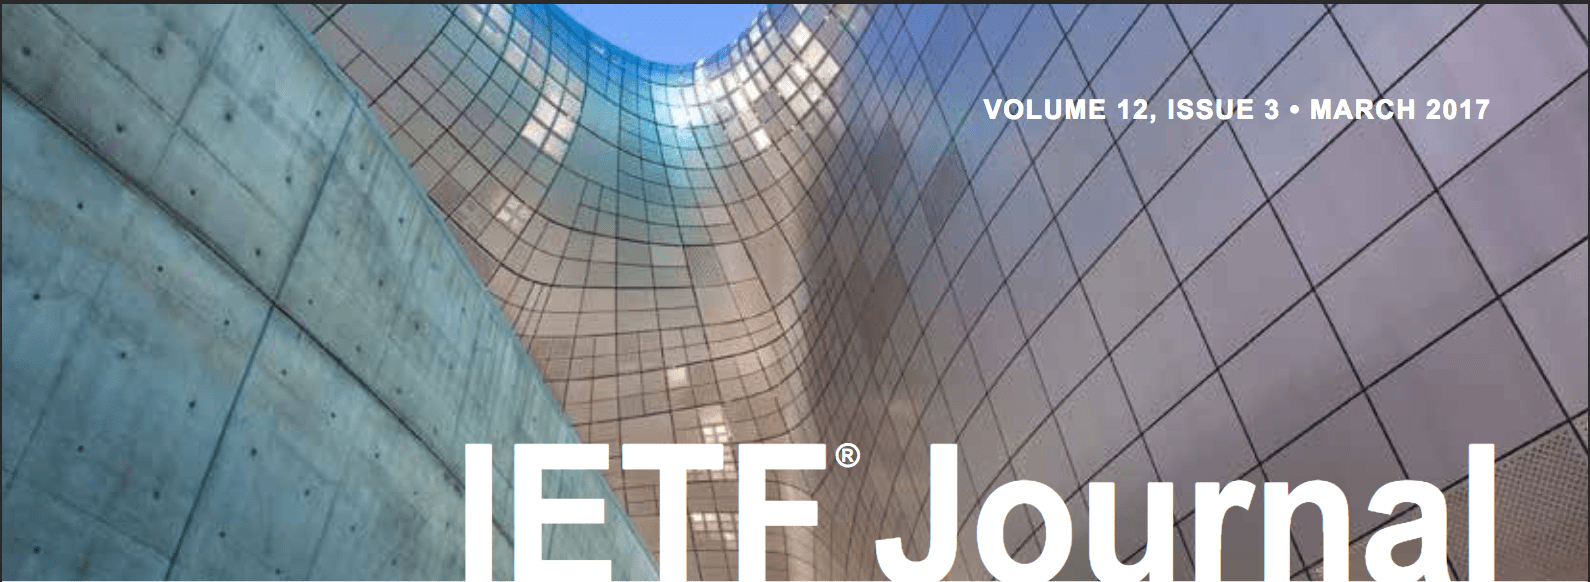 IETF Journal Volume 12, Issue 3 Now Online